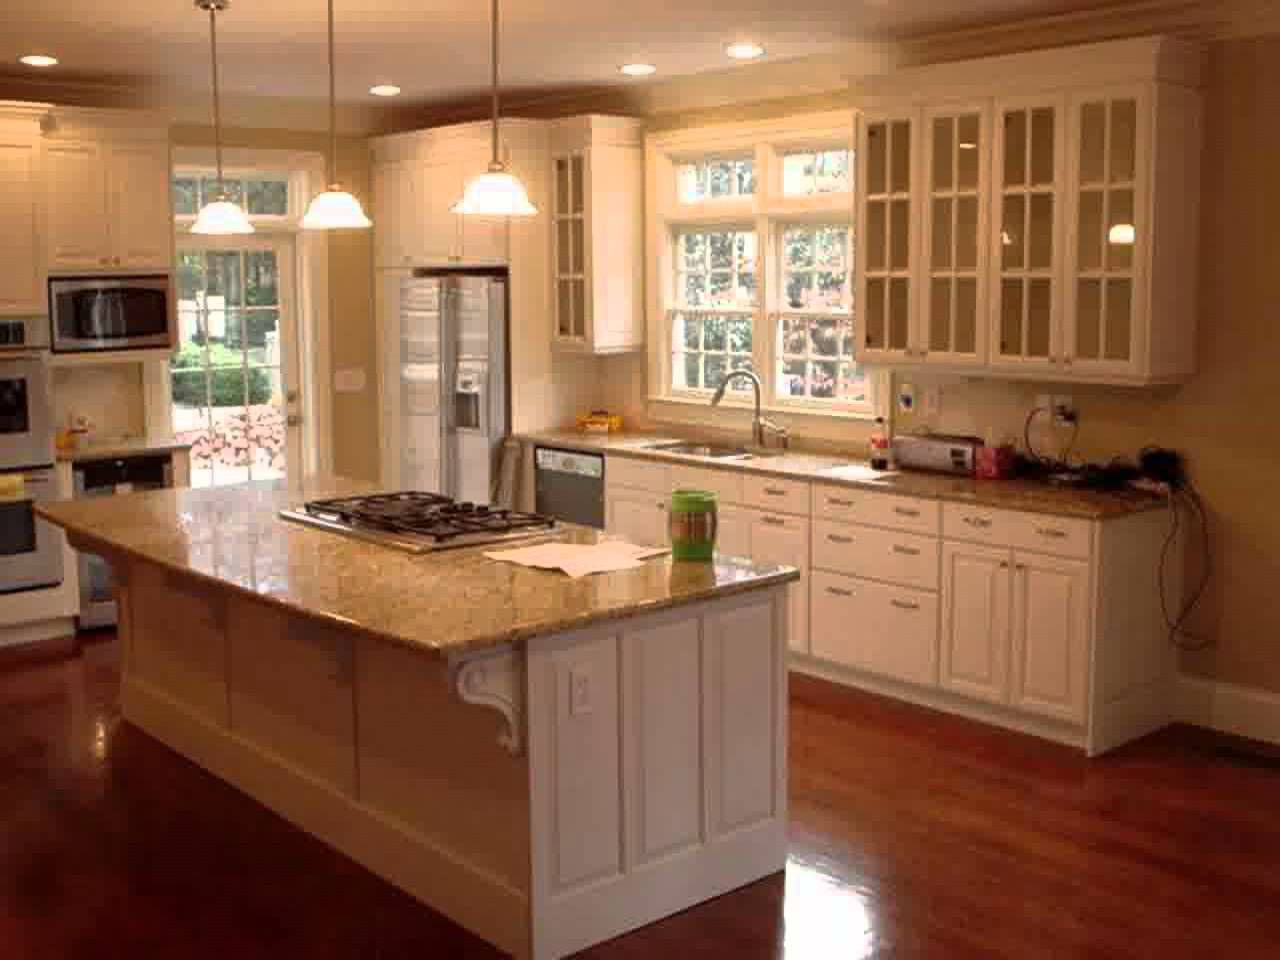 New marvellous cost of replacing kitchen cabinets 45 about remodel largest kitchen  cabinet sstelqr